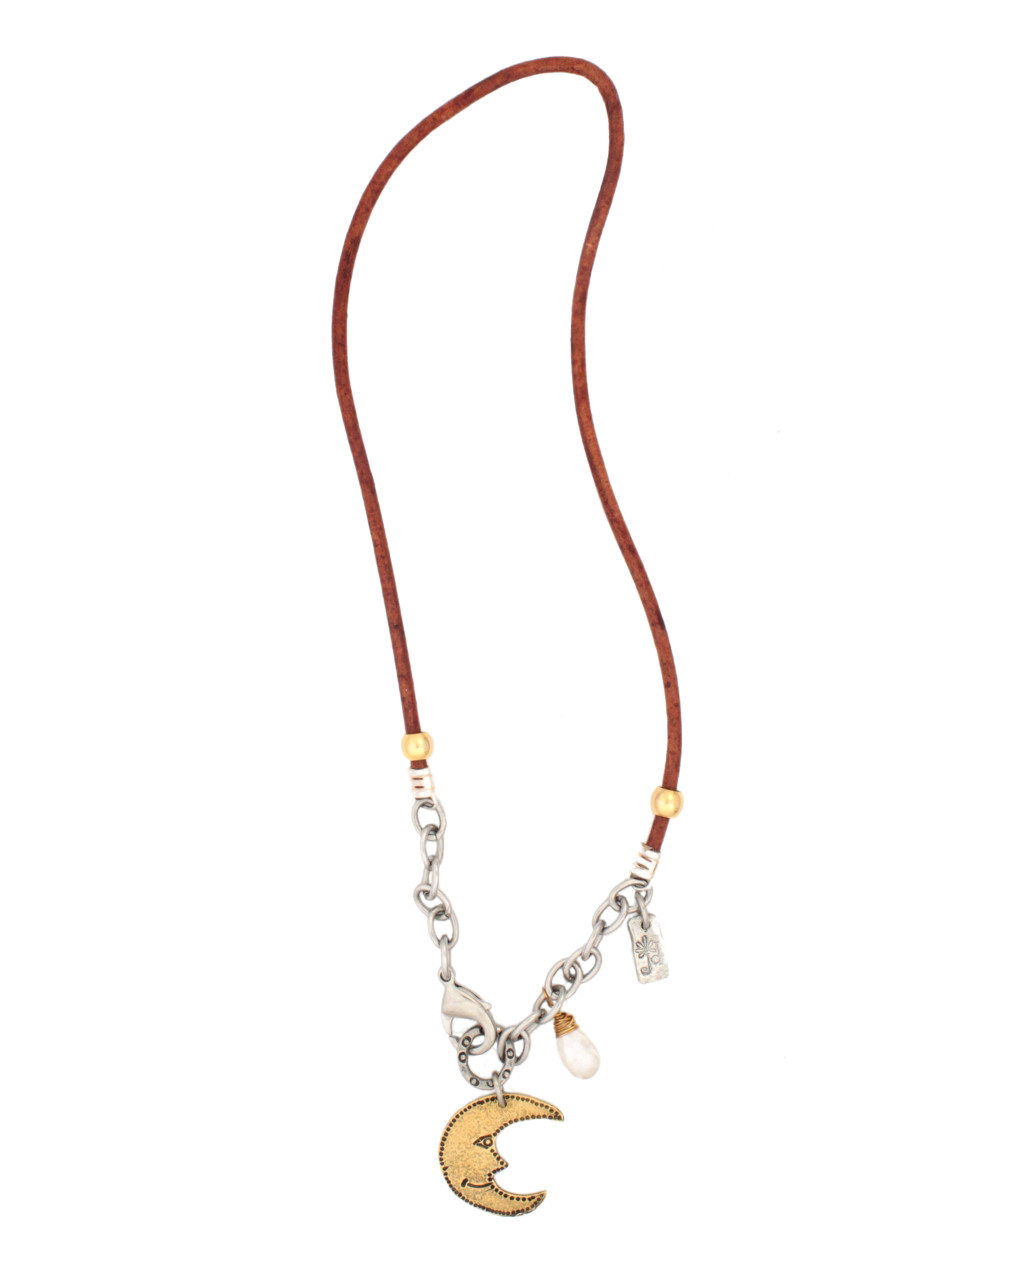 Brass-moon-brown-leather-chain-necklace